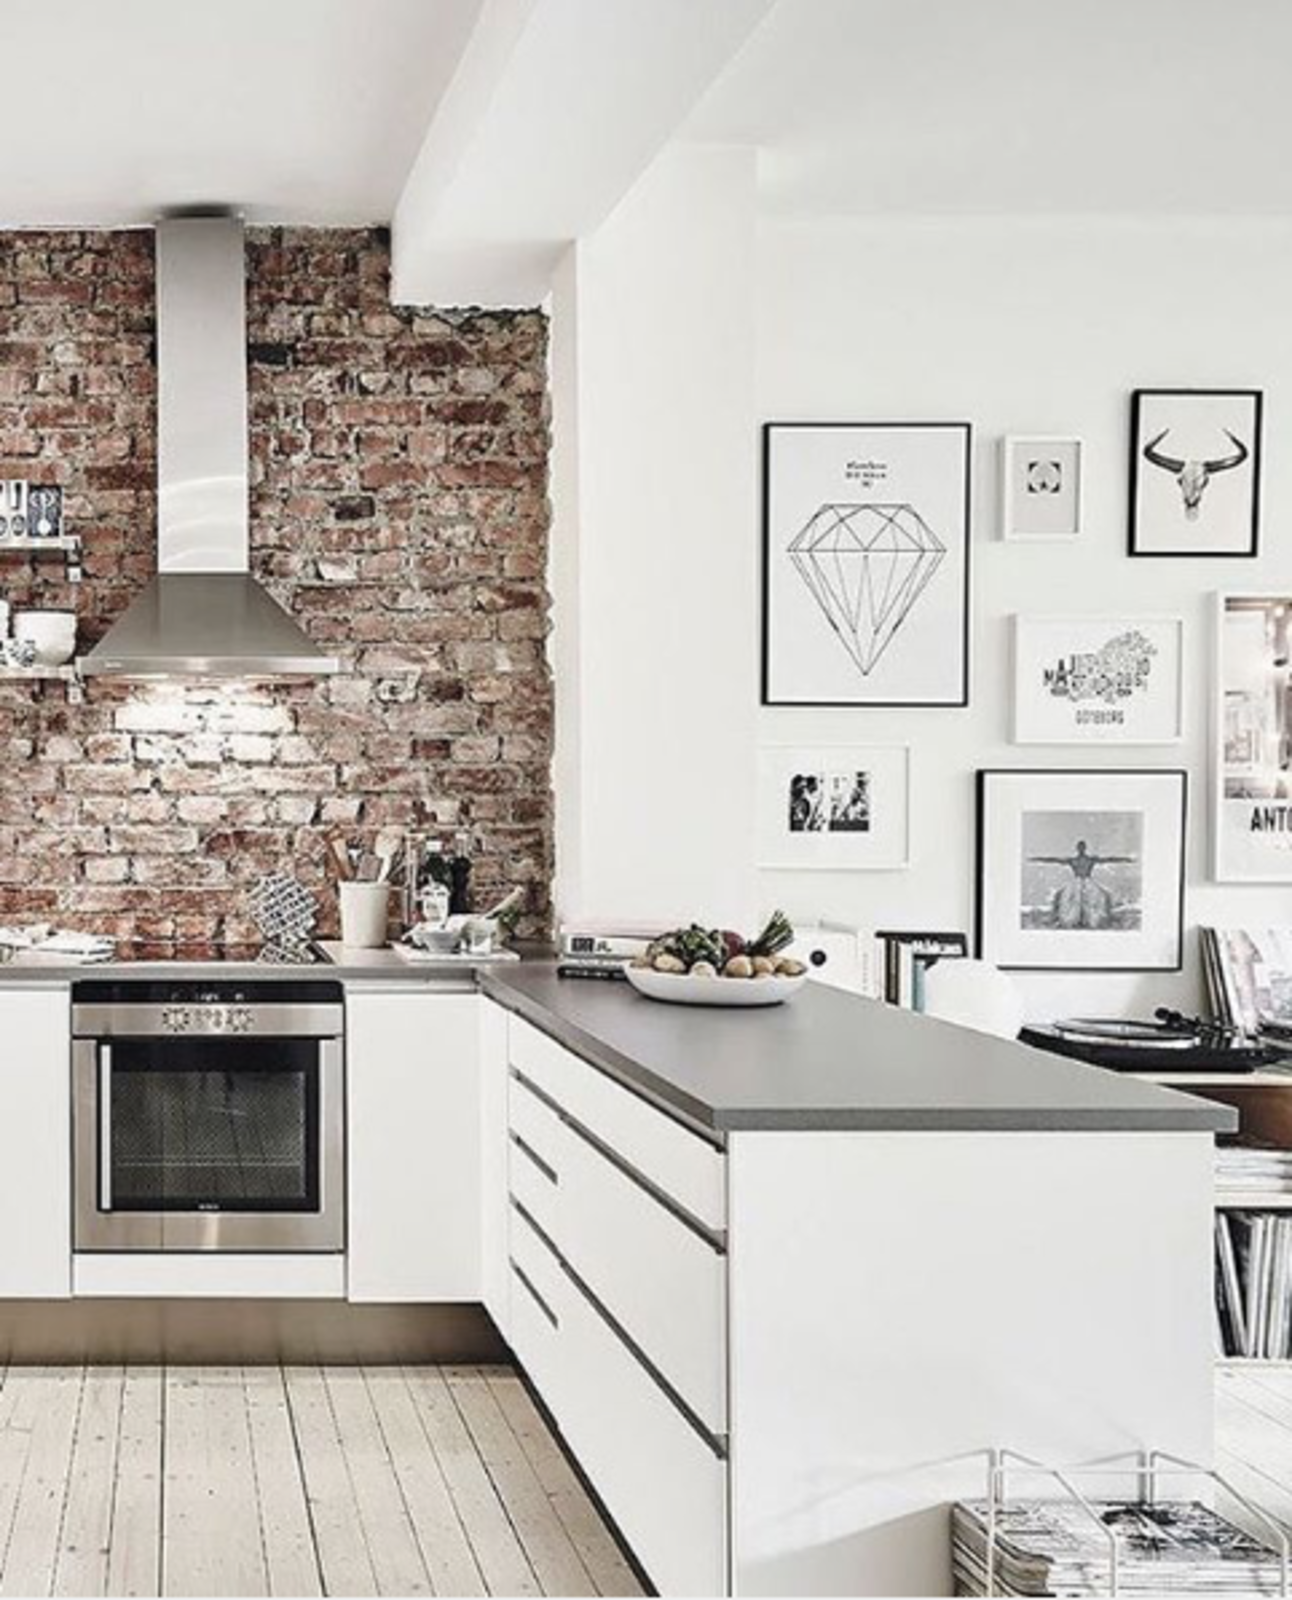 With an exposed brick wall and mesmerizing graphic art, this kitchen, posted by @abigailclaireinspo, feels particularly on-trend.  exposed brick from Spotted on Instagram: Five Totally Different Styles for Your Kitchen